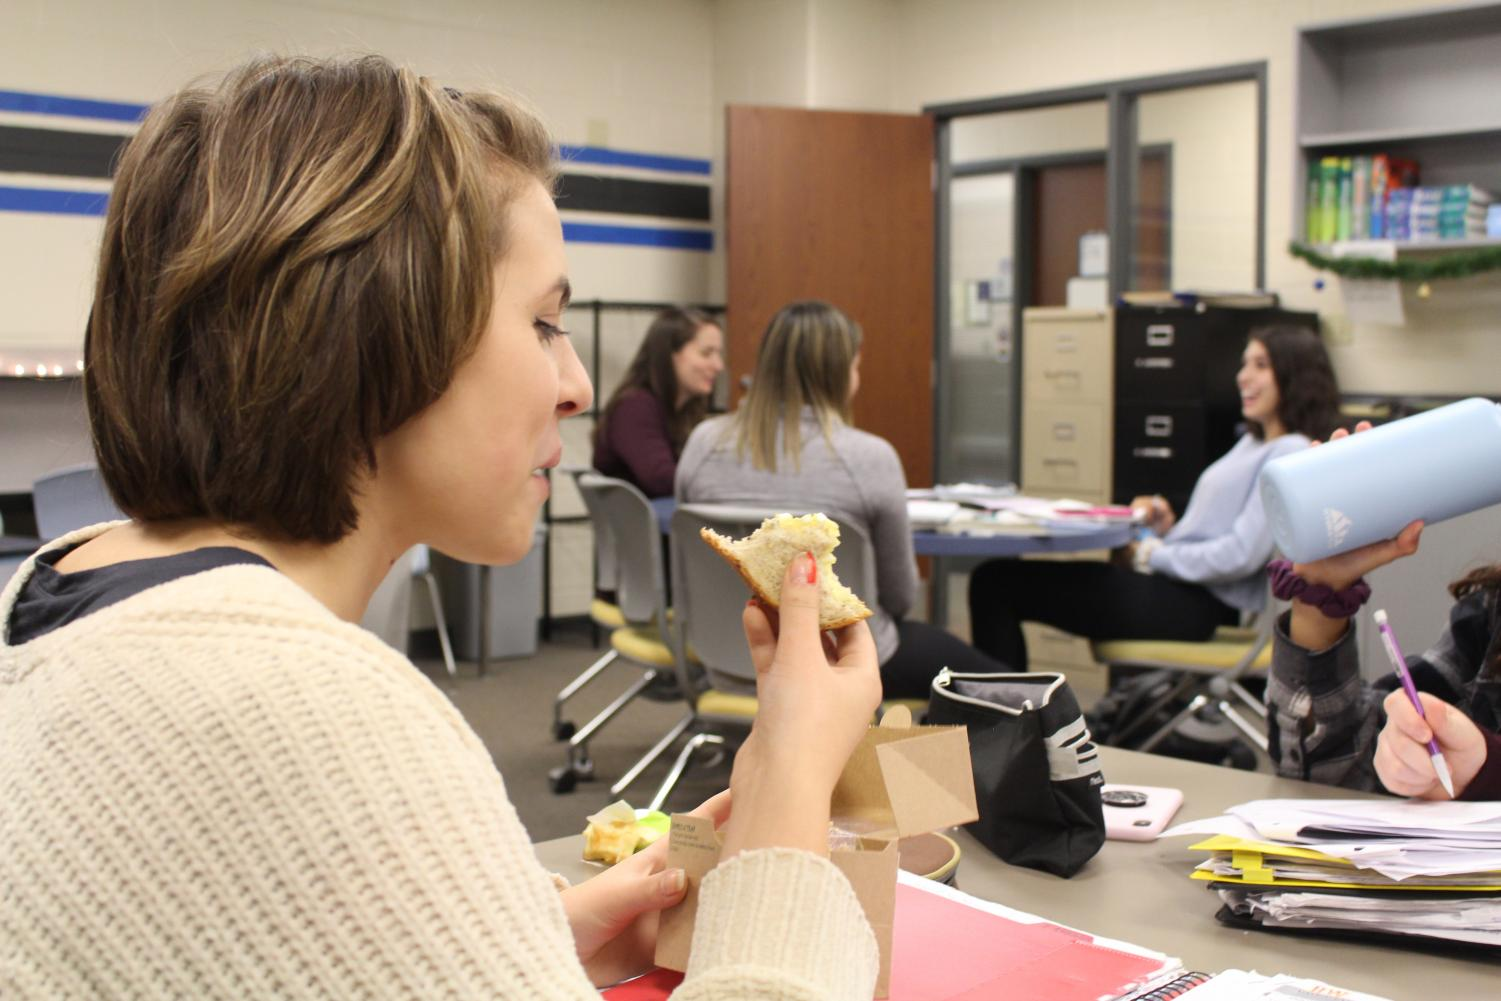 McKenna Kalesz, sophomore, eats an egg salad sandwich from the school cafeteria. This is just one of the vegetarian options students can find for lunch at the school.